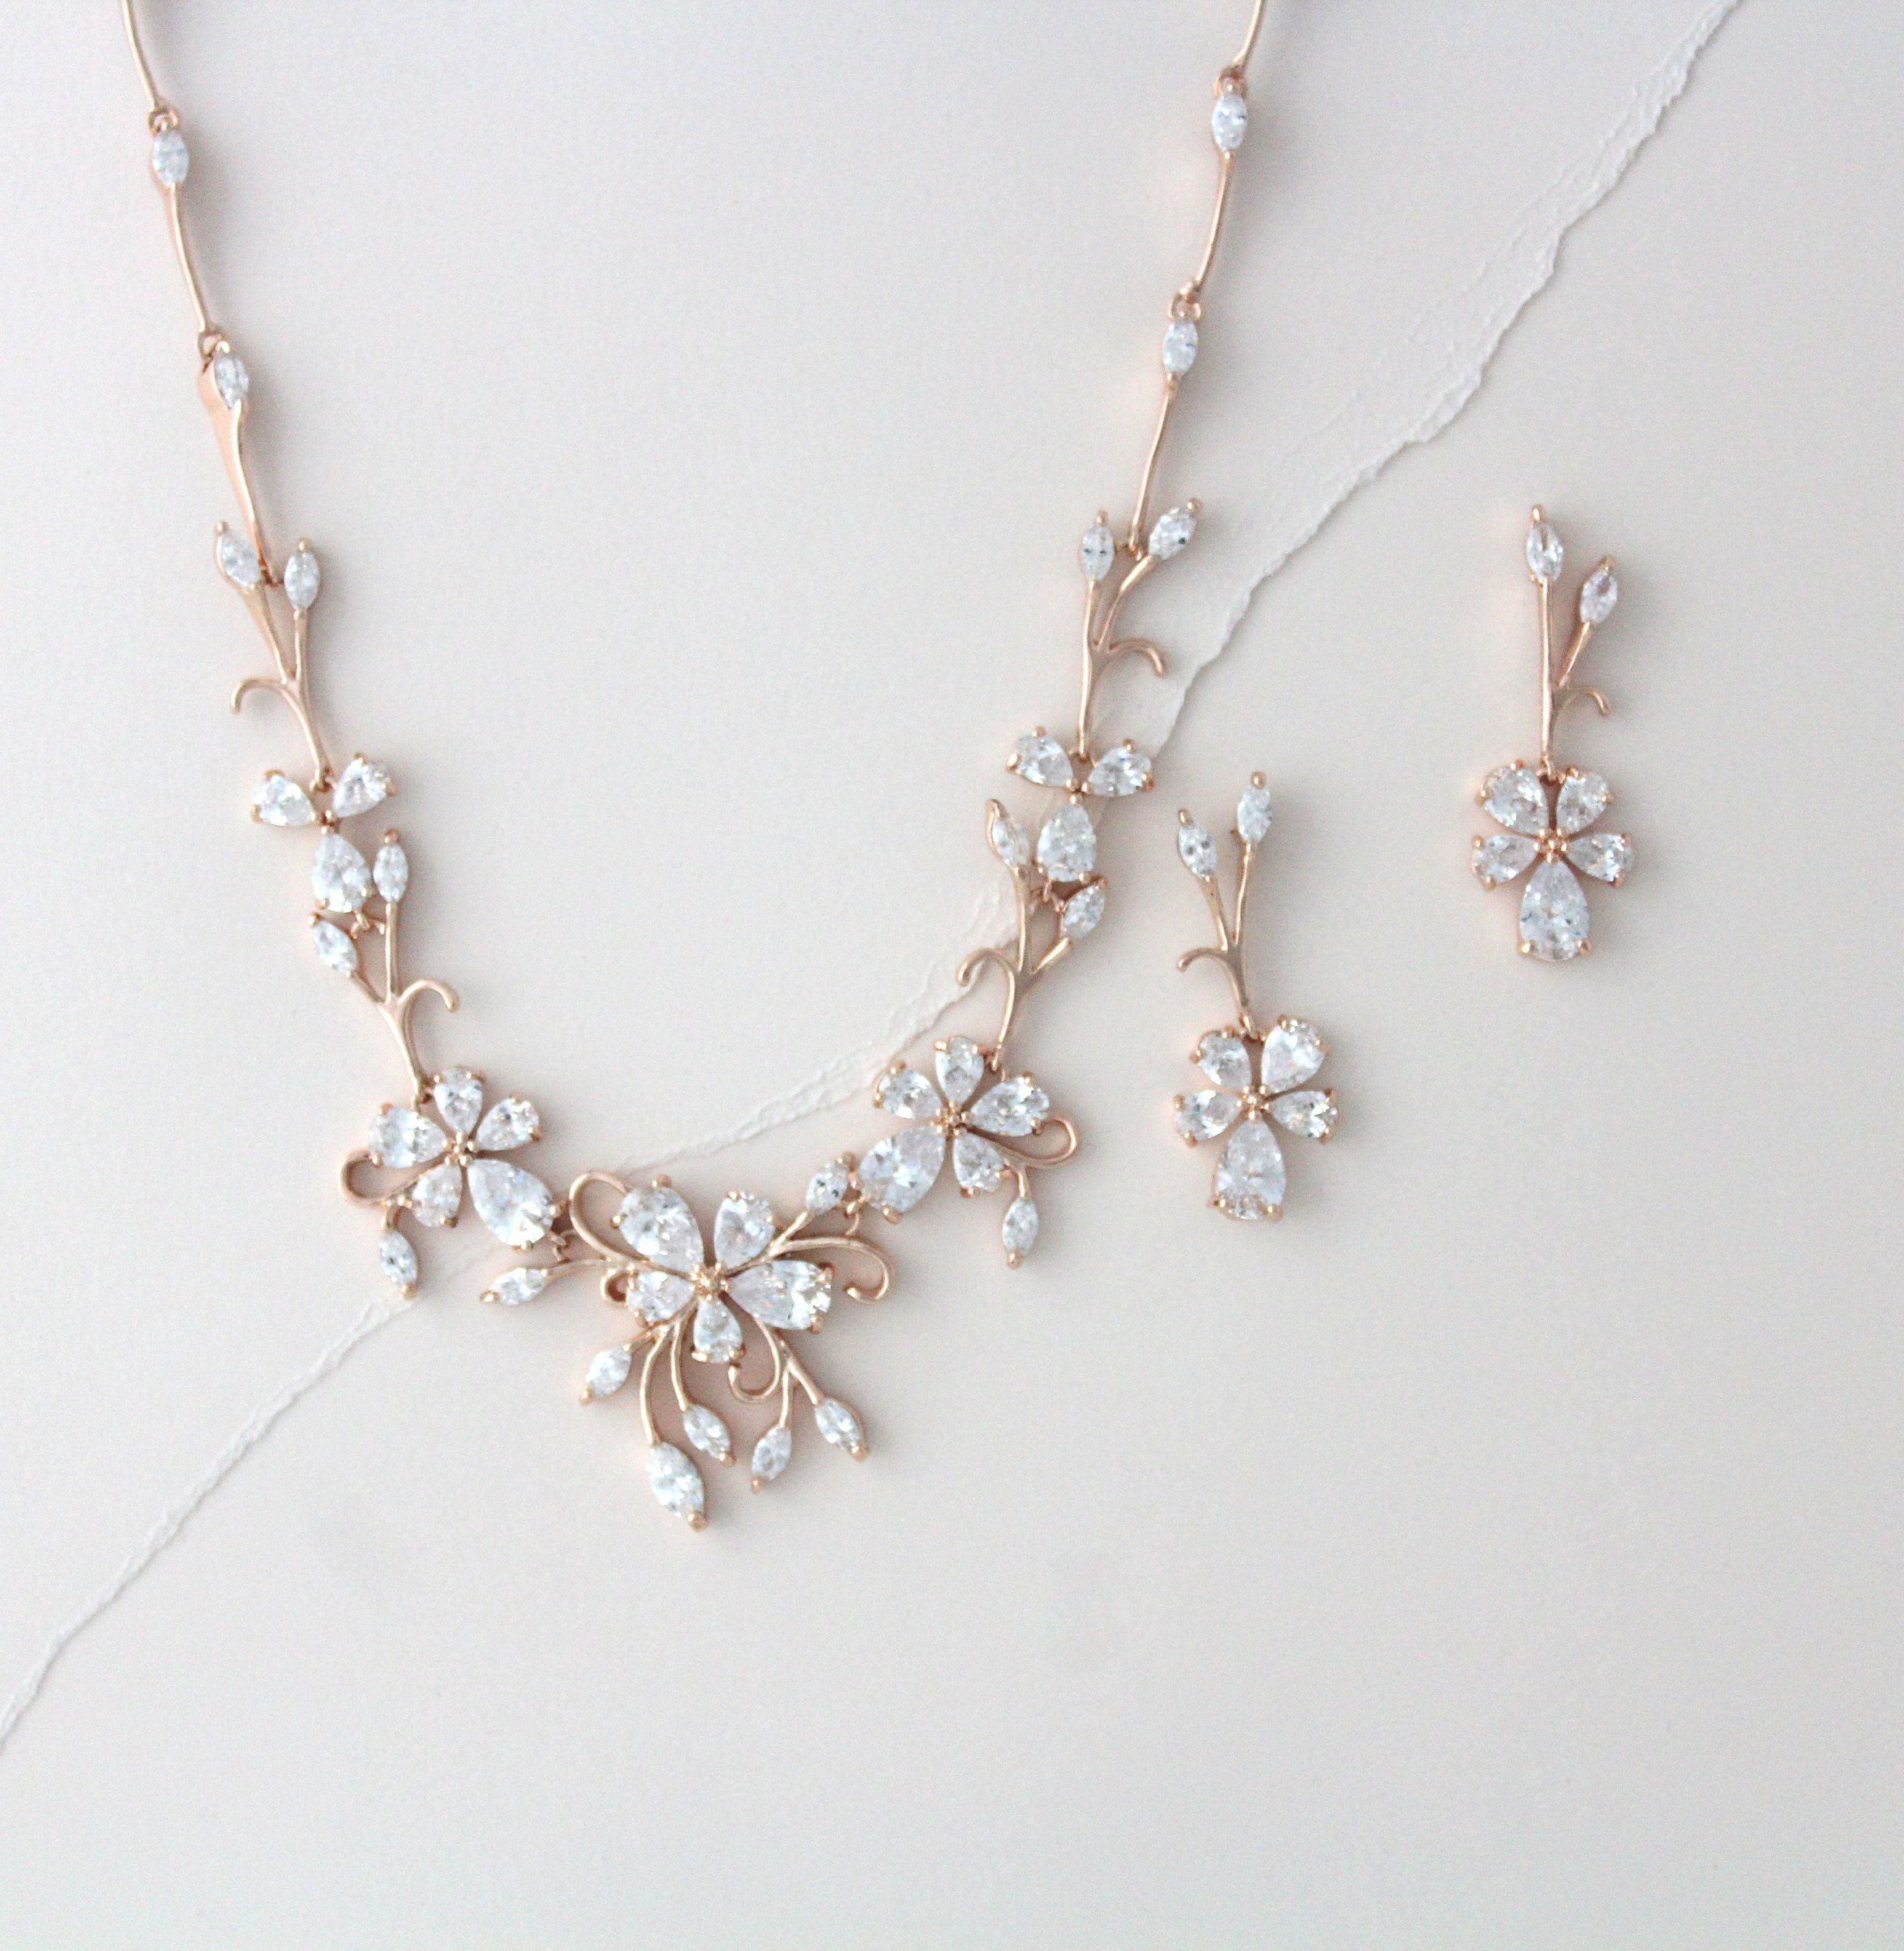 Rose gold CZ necklace and earrings Bridal jewelry Dainty Bridal necklace set Small leaf Bridal earrings Rose gold Bridesmaid jewelry gift